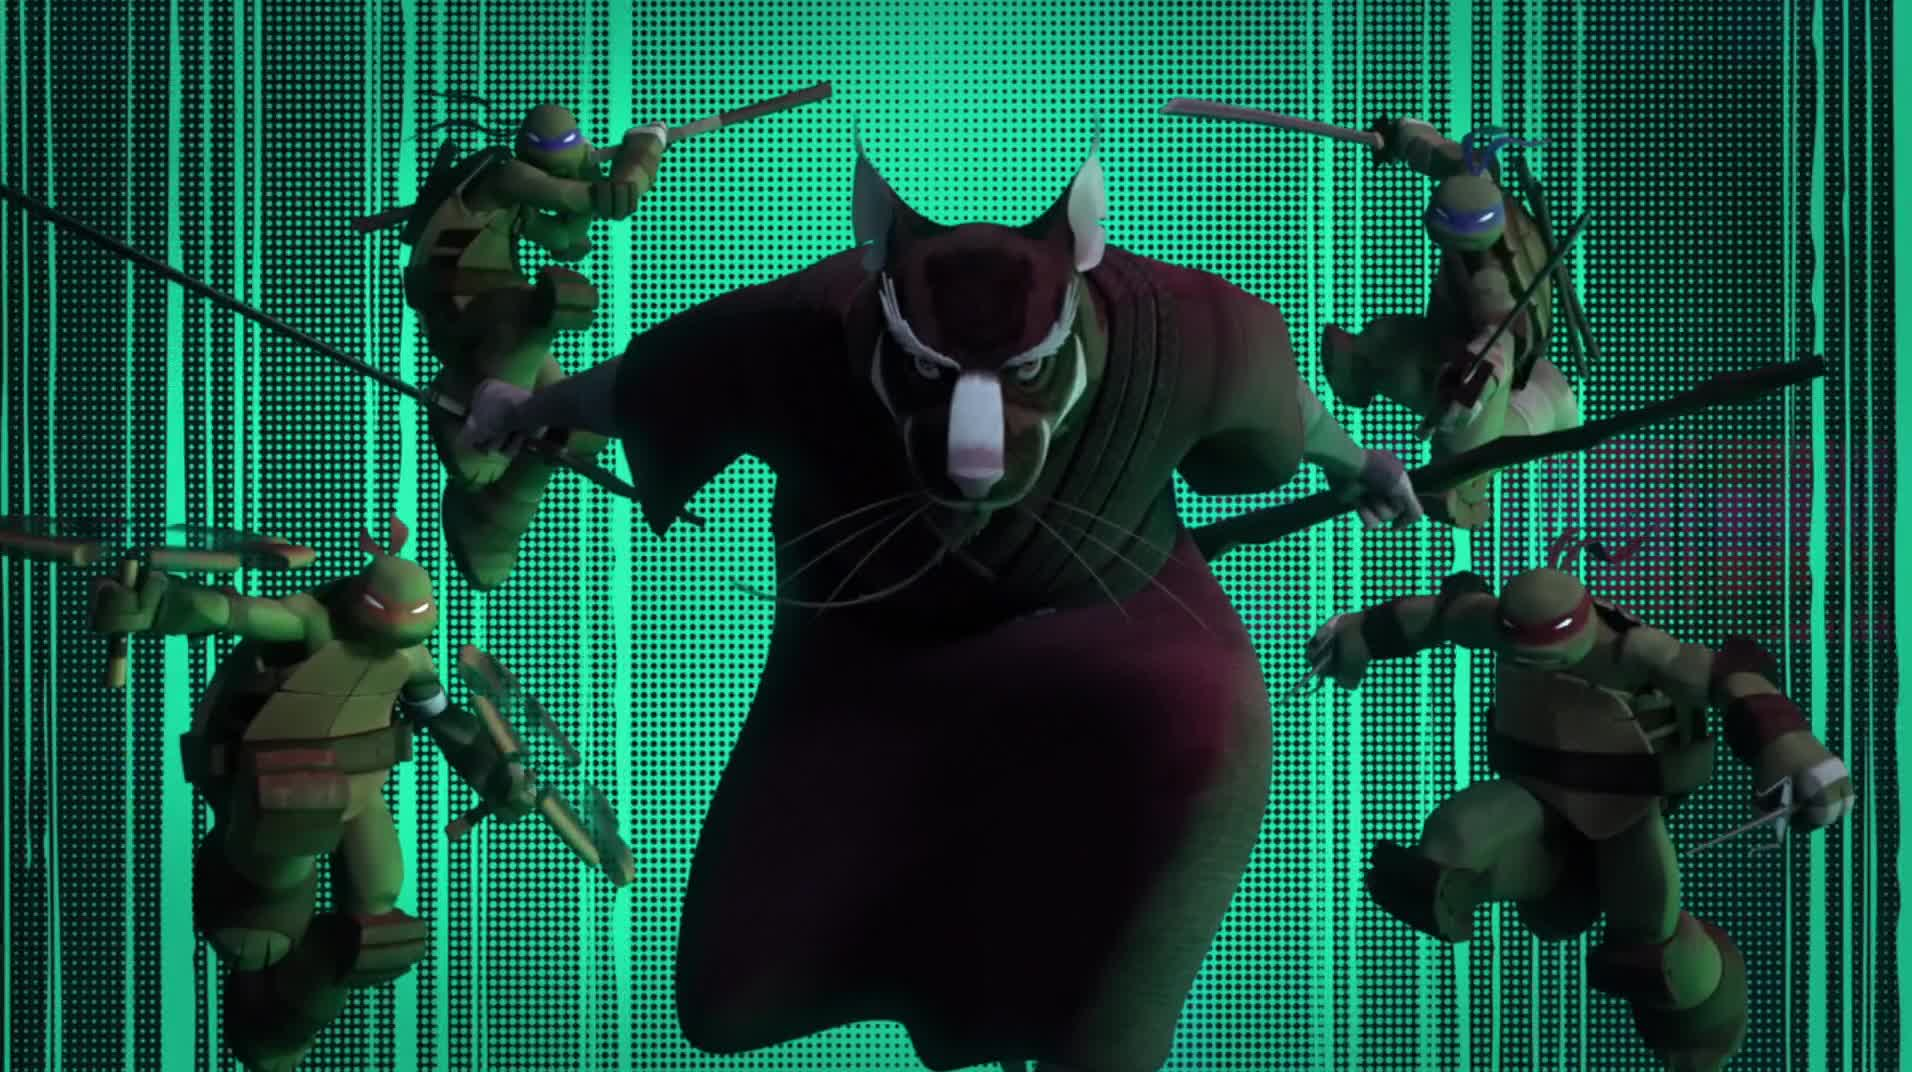 Teenage Mutant Ninja Turtles Shredder 2014